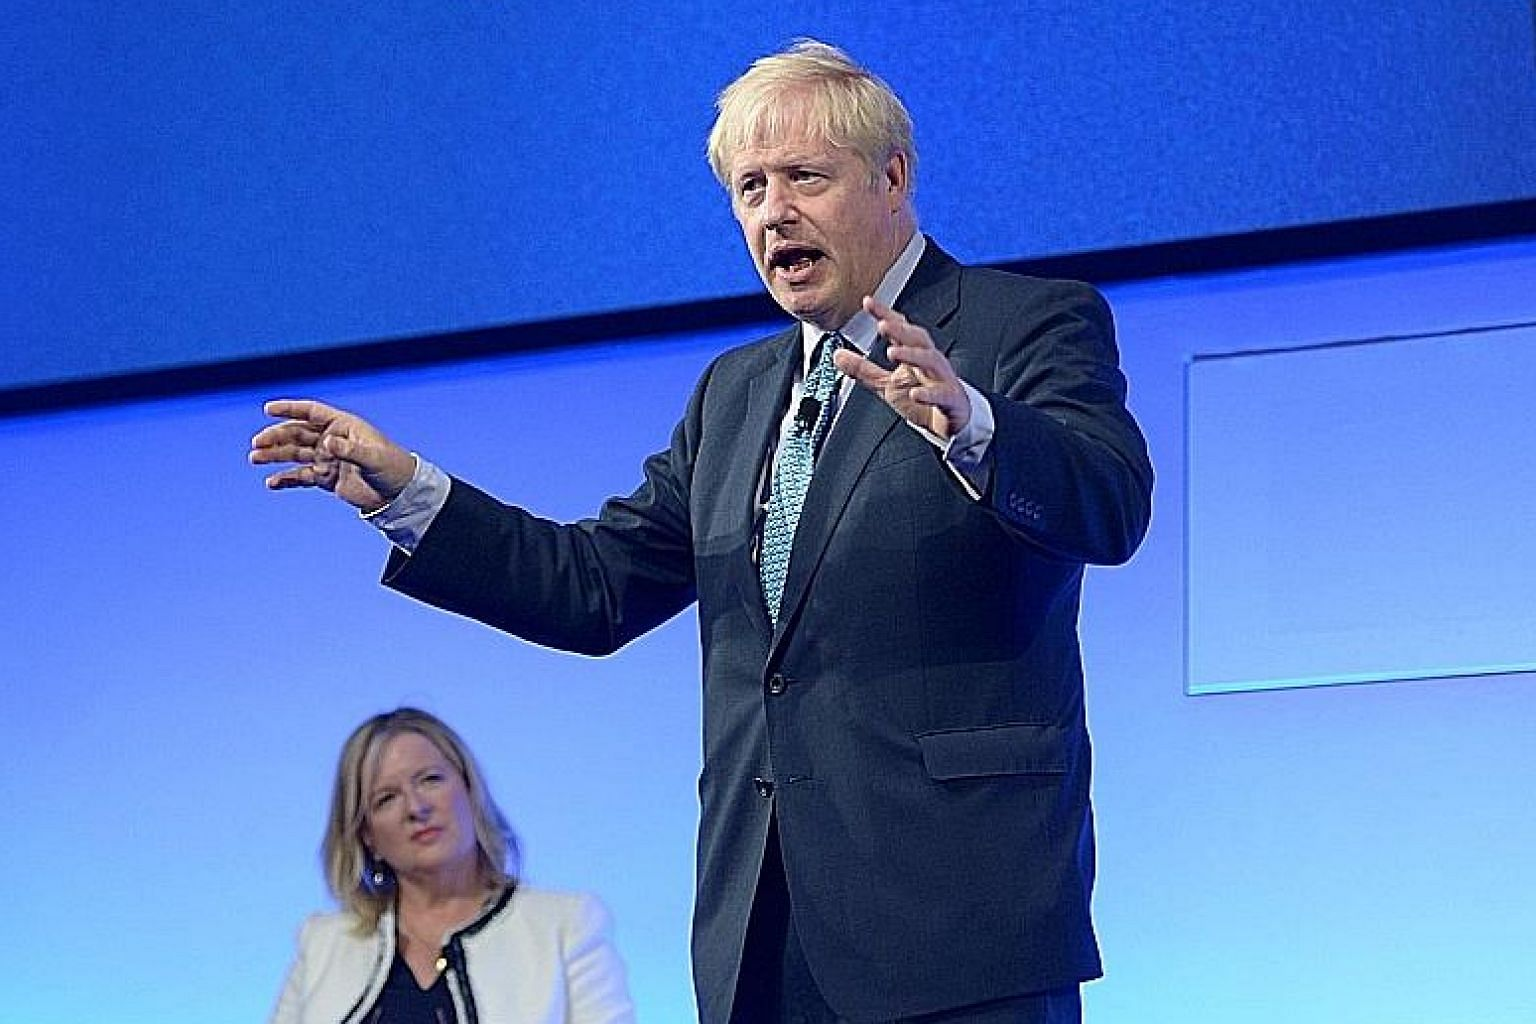 Mr Boris Johnson limited his media appearances during the early stage of the leadership campaign, but that led to accusations that he was ducking scrutiny over his Brexit plan, which critics say remains vague. PHOTO: REUTERS